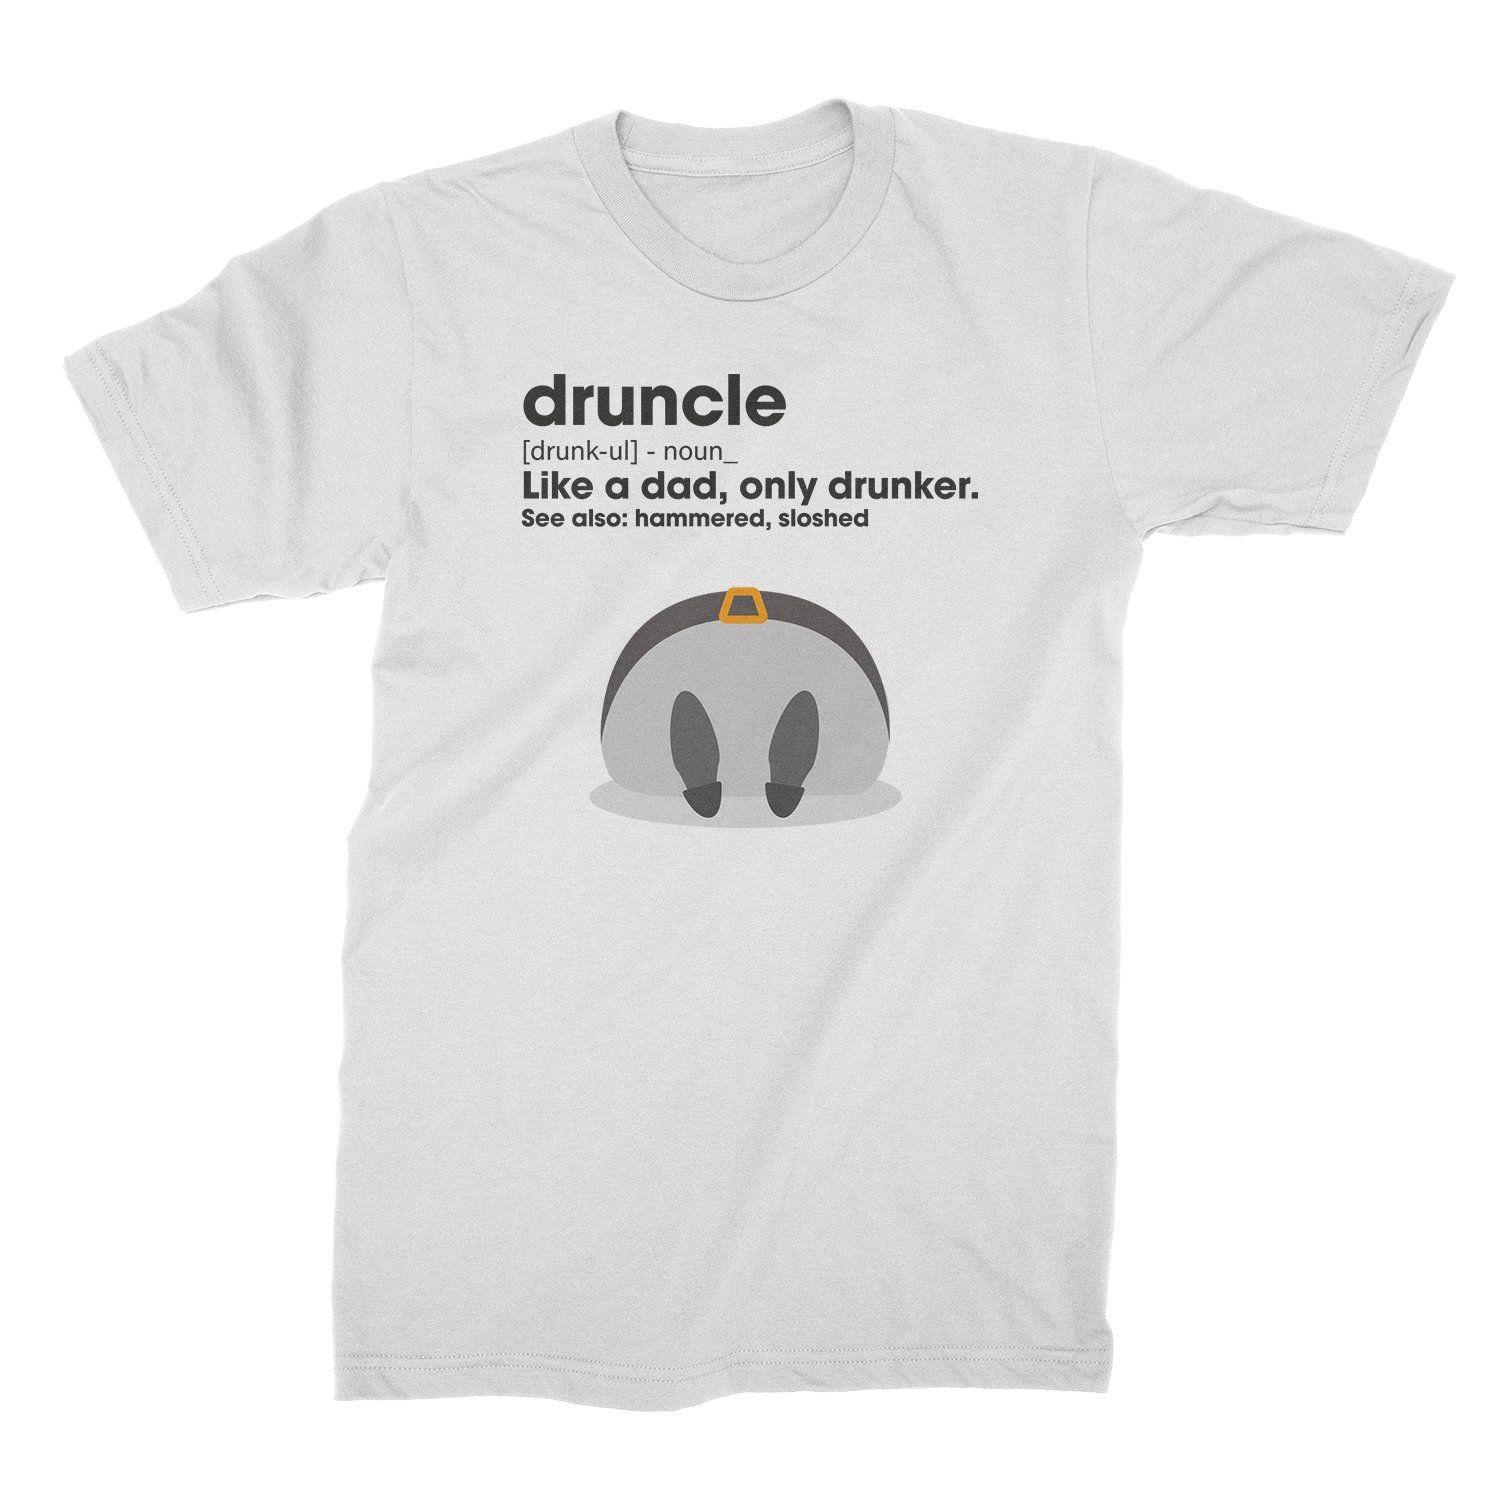 8c216eff Druncle Shirt Drunk Uncle Shirt Drunkle Tshirt Suit Hat Pink T Shirt  Customised T Shirts Ladies T Shirts From Teecup, $16.24| DHgate.Com